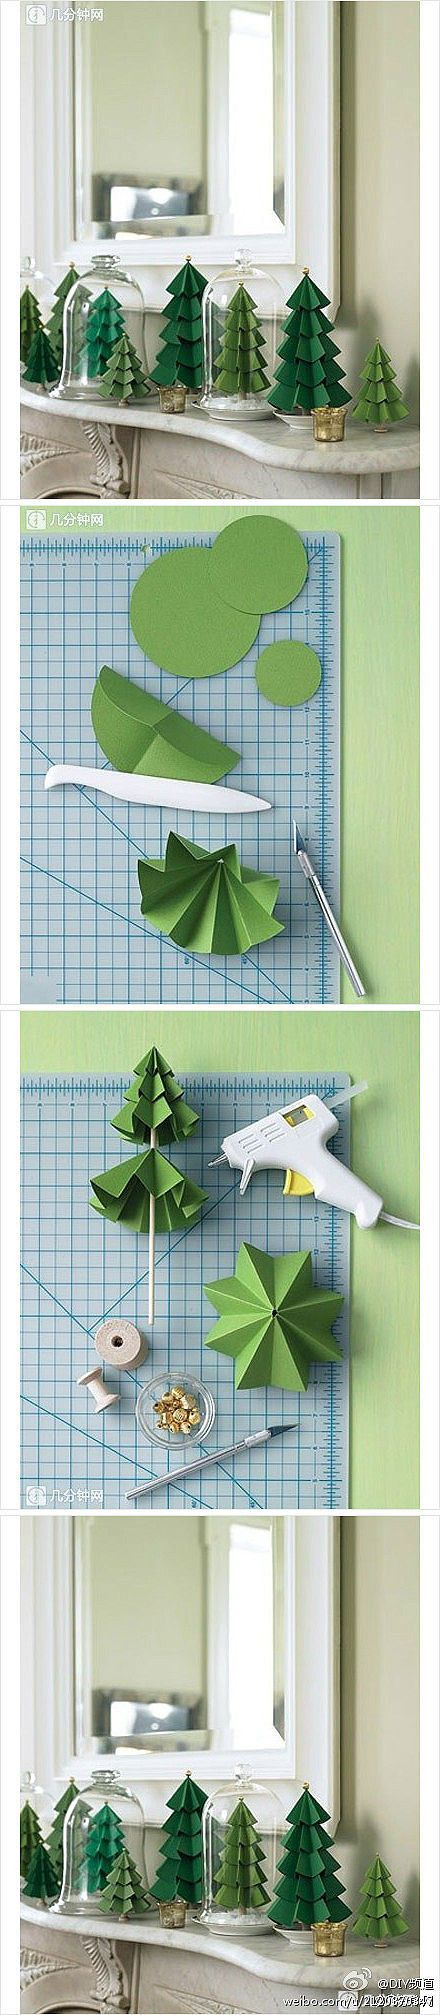 How to make paper craft Christmas trees step by step DIY tutorial instructions / How To Instructions